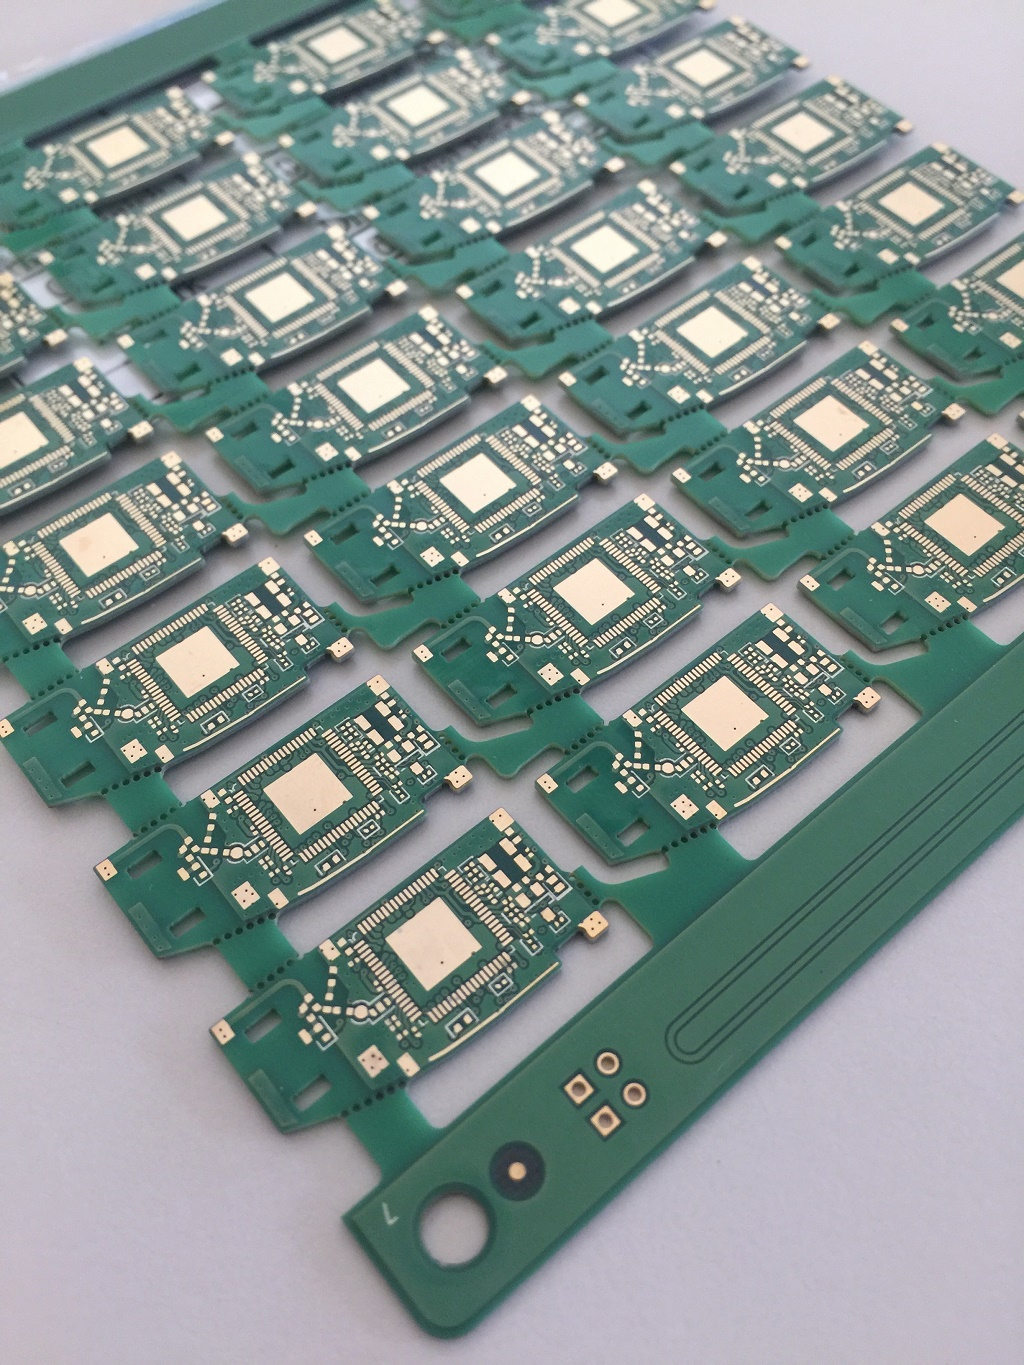 Taiwan Rigid Pcb 6l Impedance Control With Blind Via Design Printed Circuit Board Six Layer Micro Controller